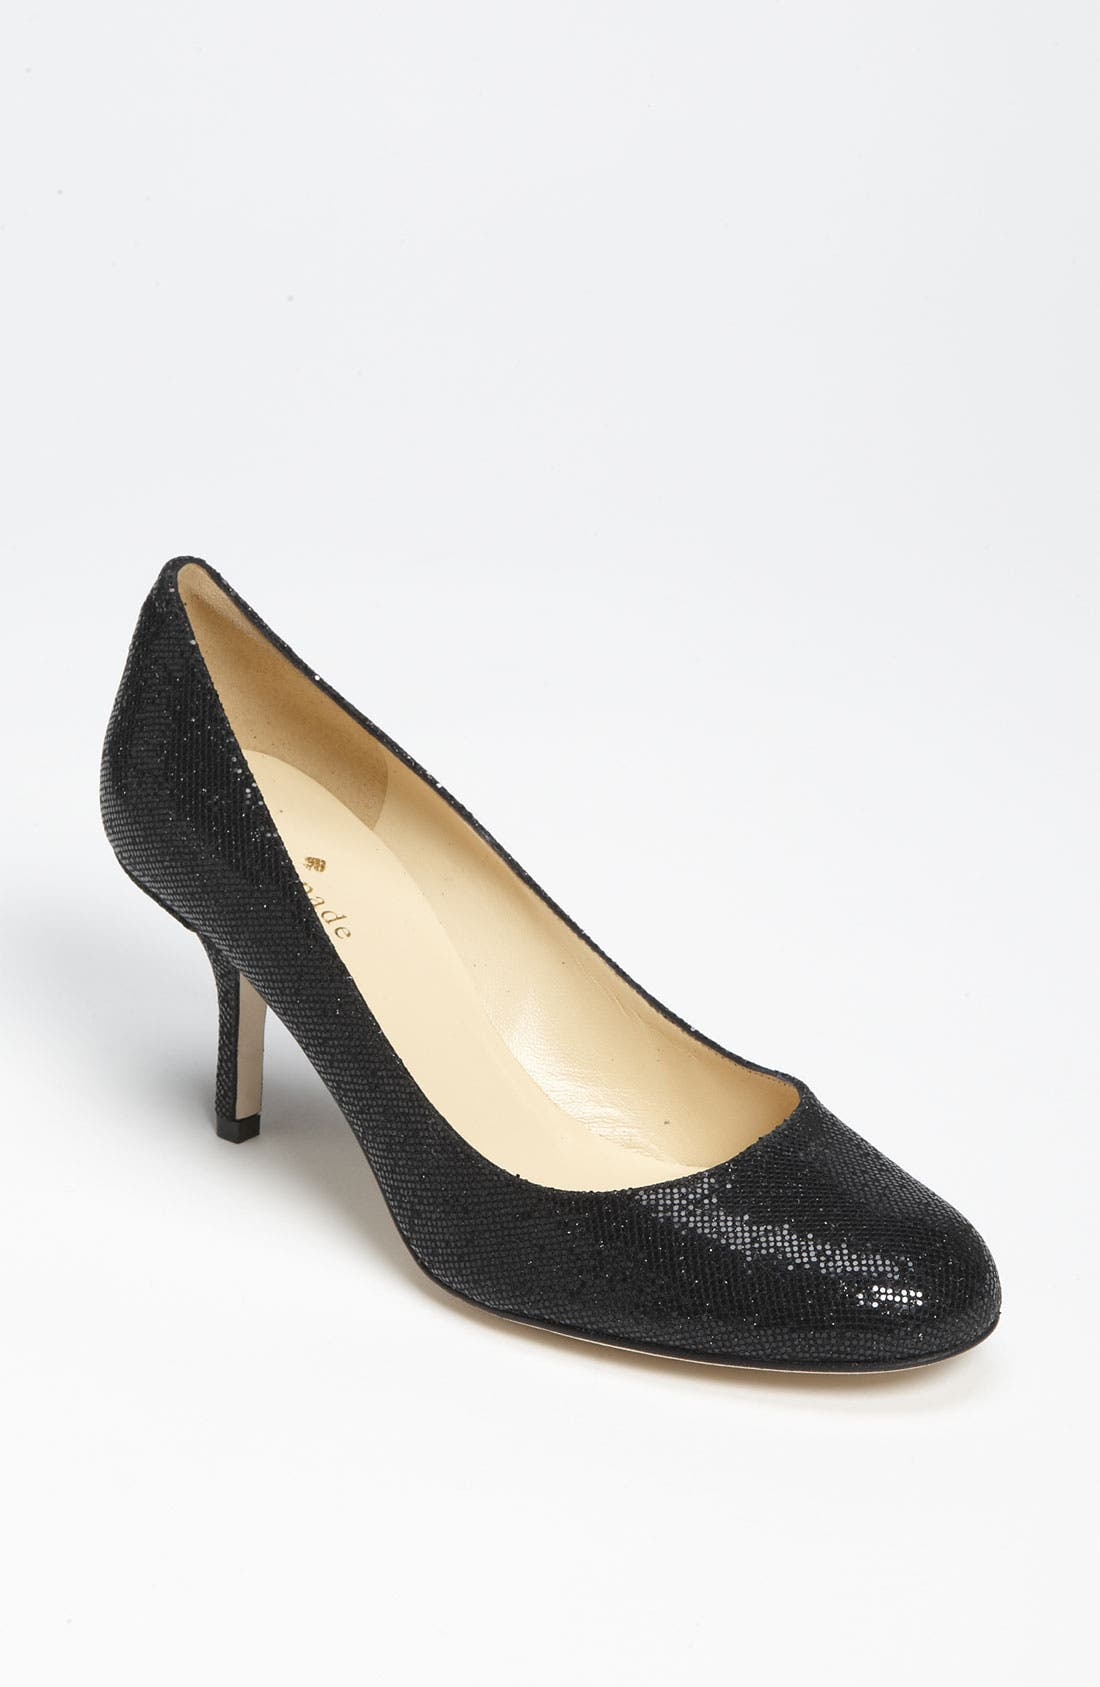 Main Image - kate spade new york 'manda' pump